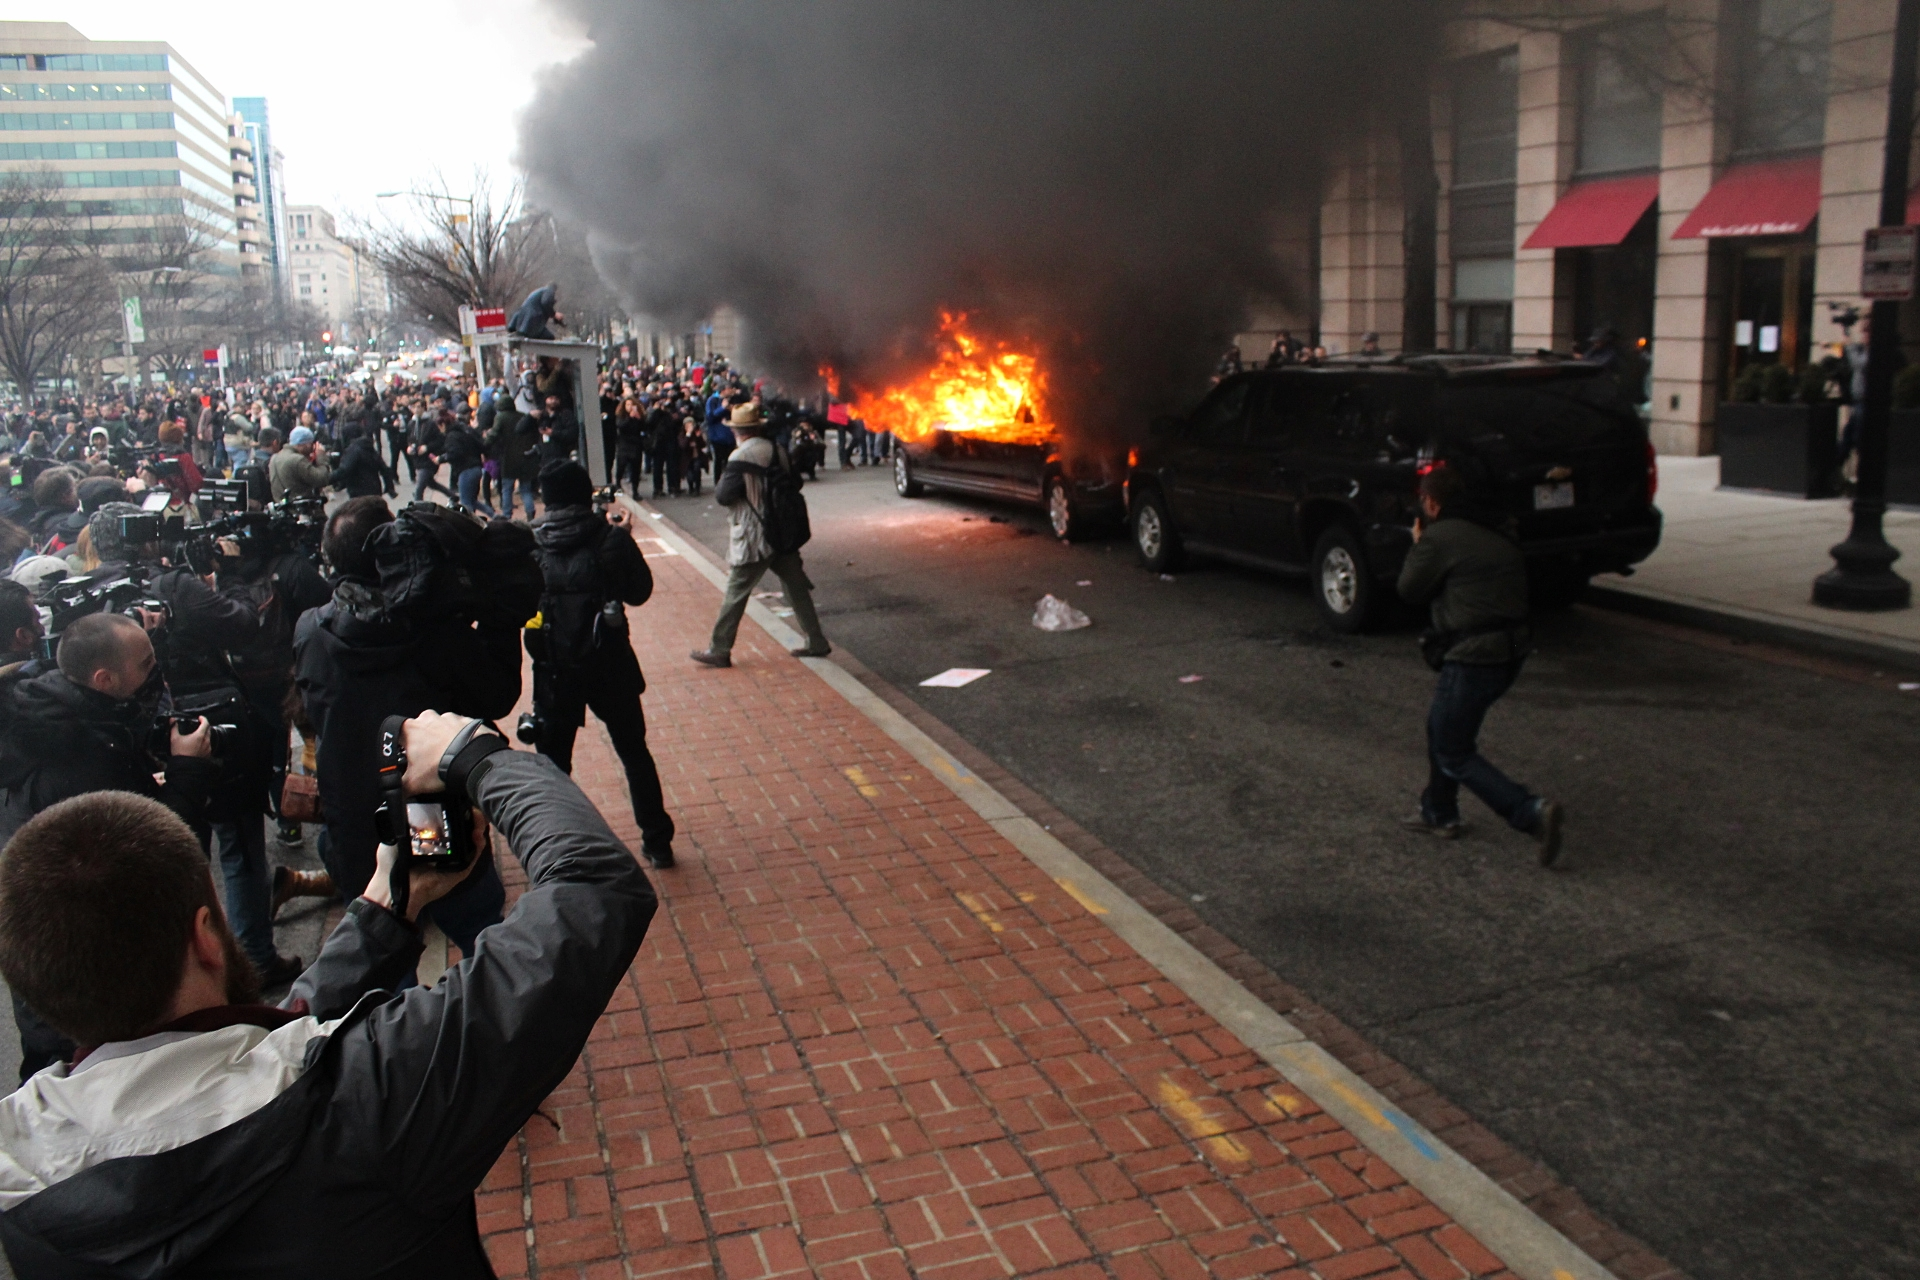 This photo shows a protest scene in Washington, not Worcester, where a peaceful protest of about 40 people occurred Inauguration Day. Photo by Evan Lips.